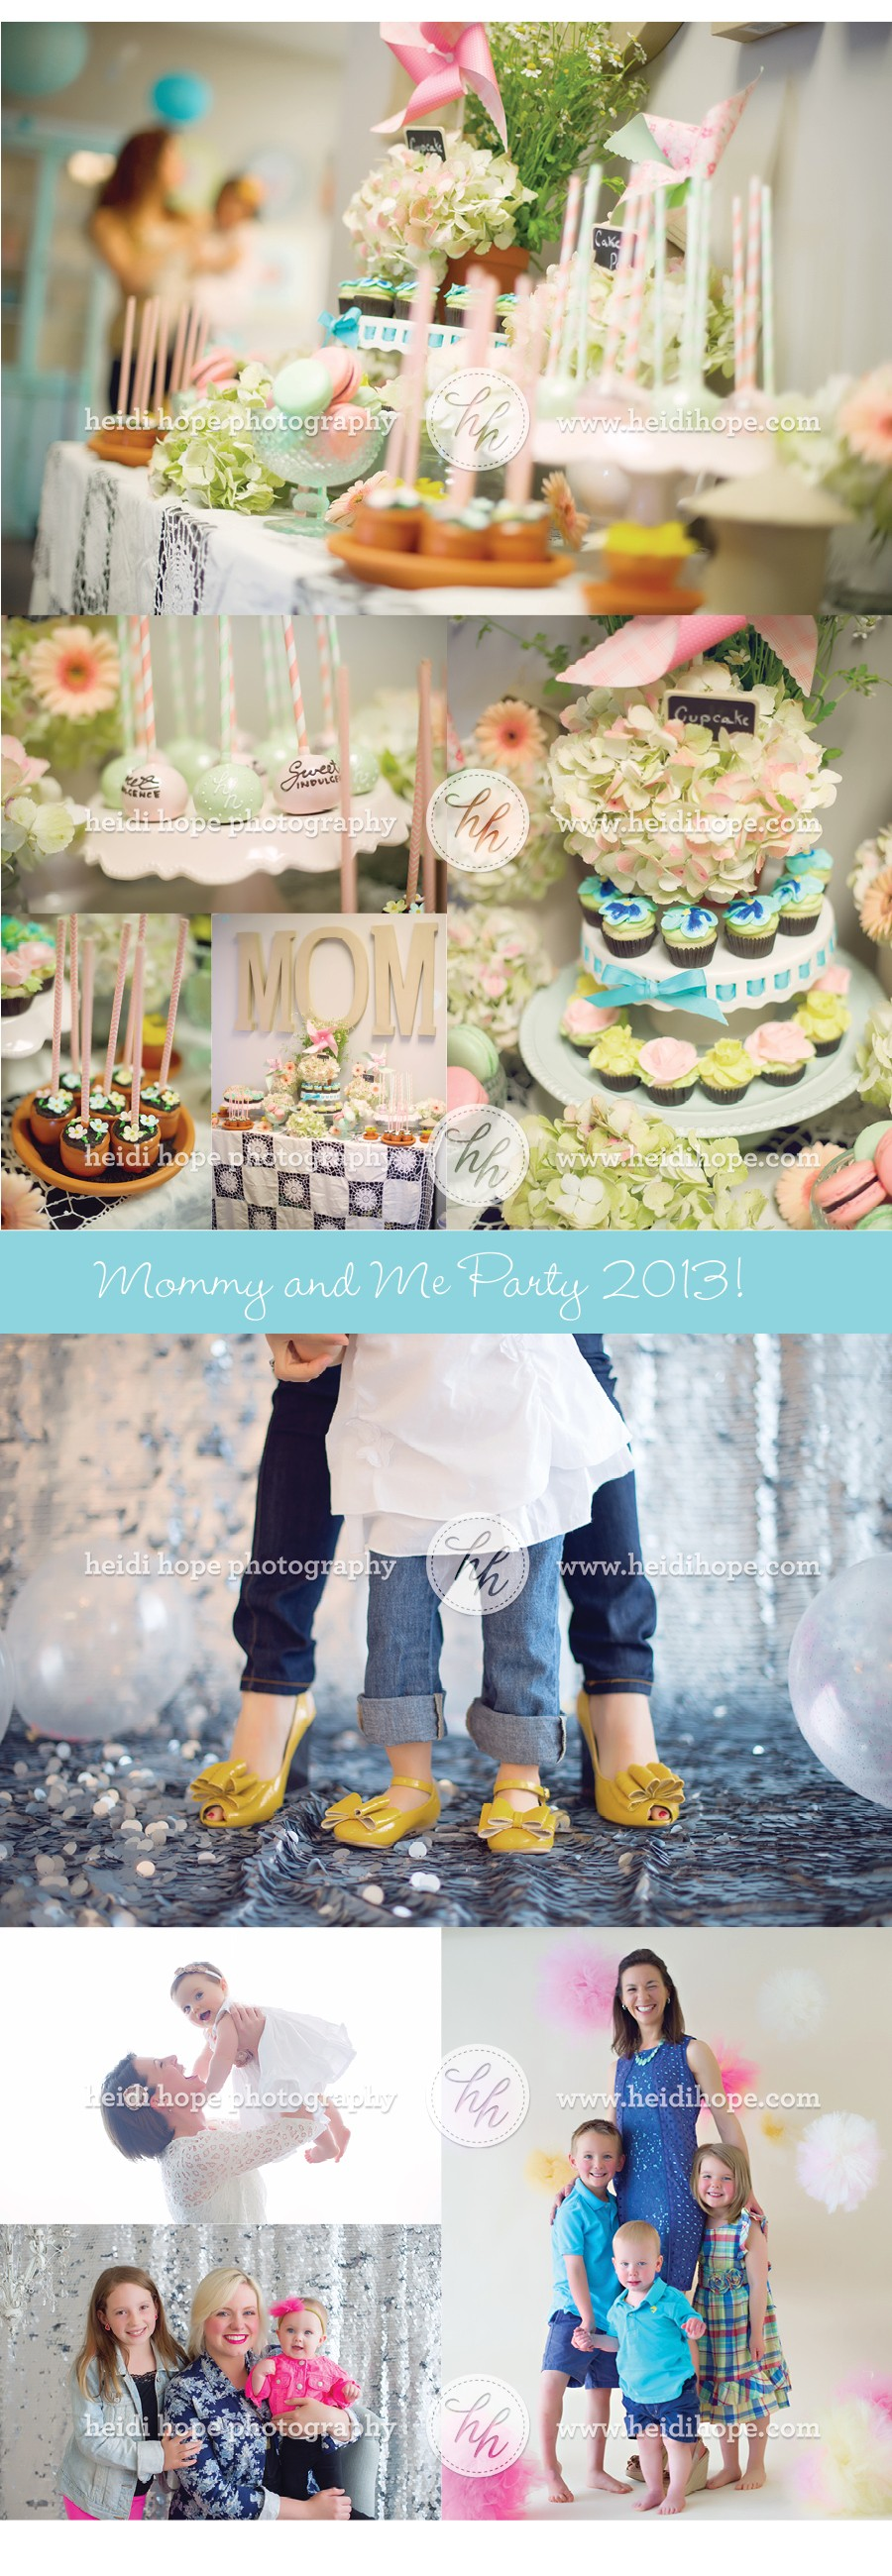 Mommy and Me Portrait Party 2013 for Mother's Day! Heidi Hope Photography #mother's day #portrait party #moms